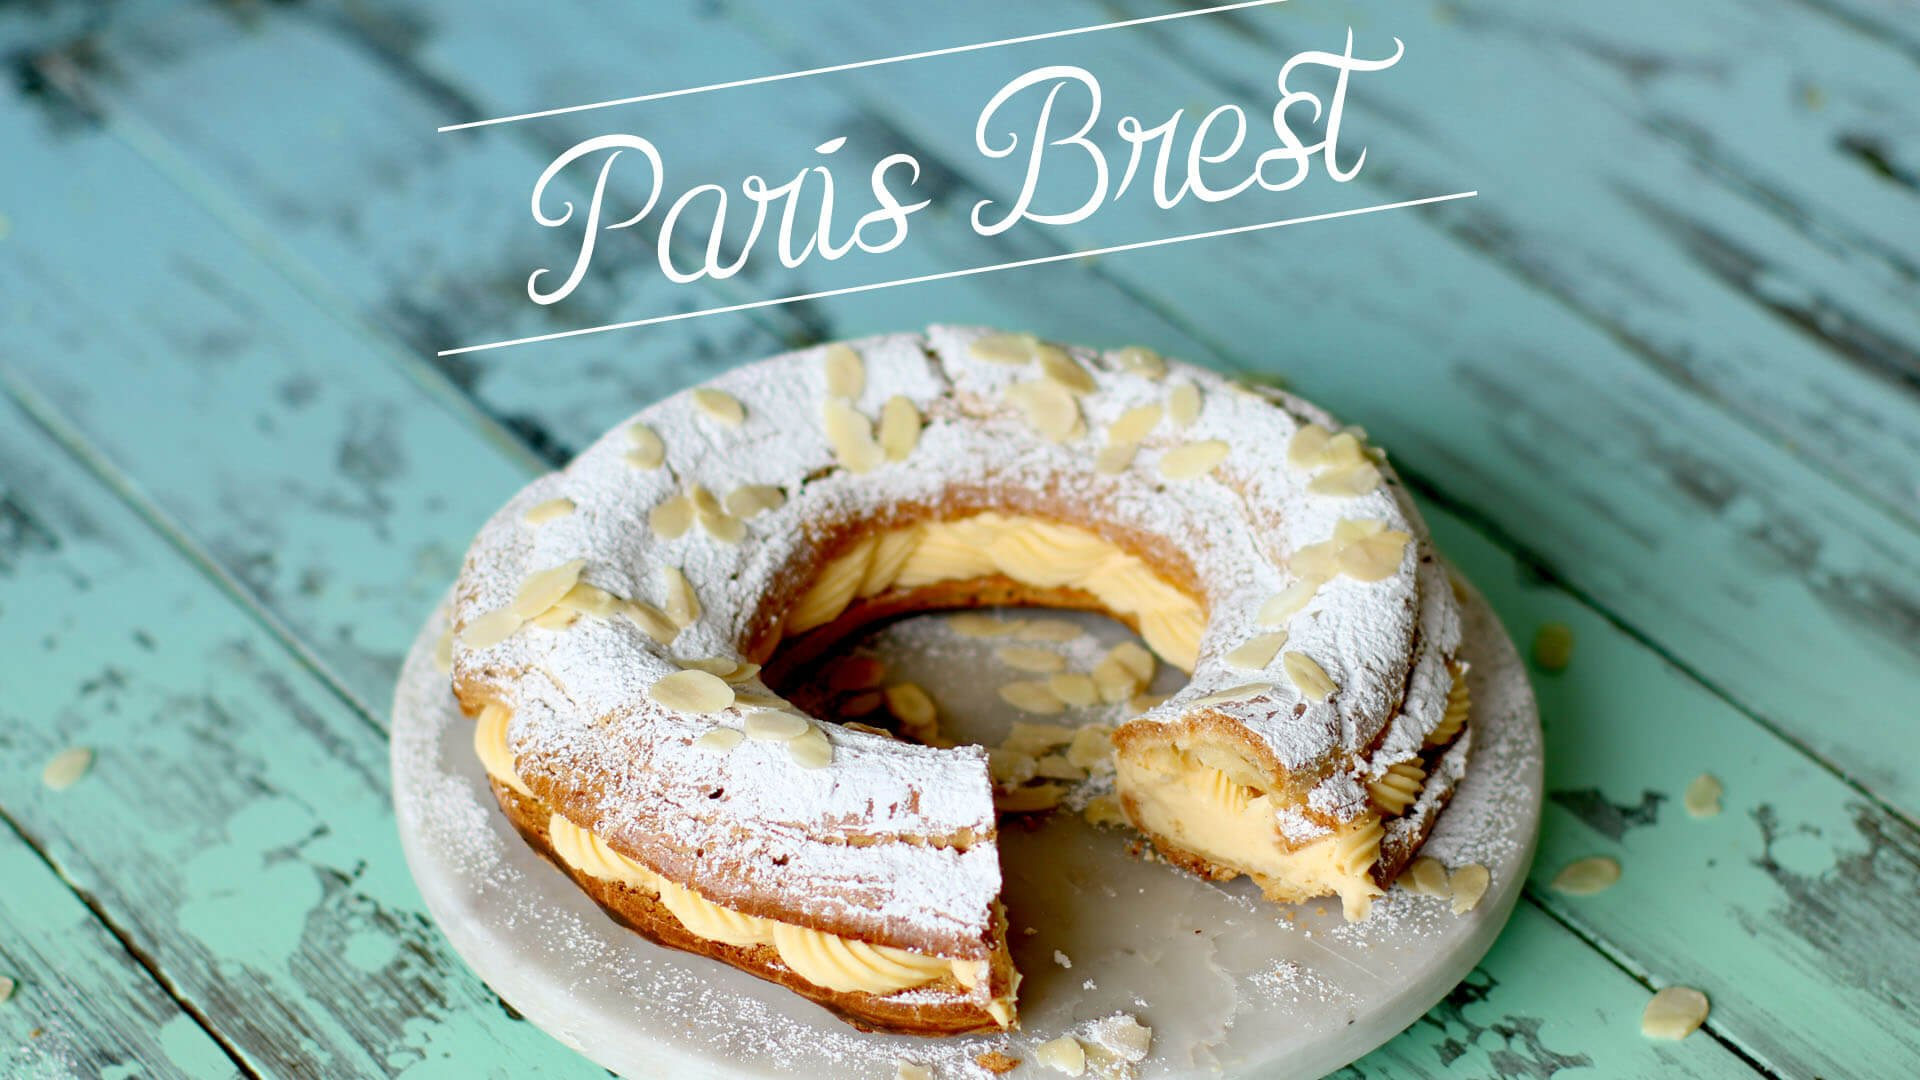 Picture of desert paris brest with green wood backdrop